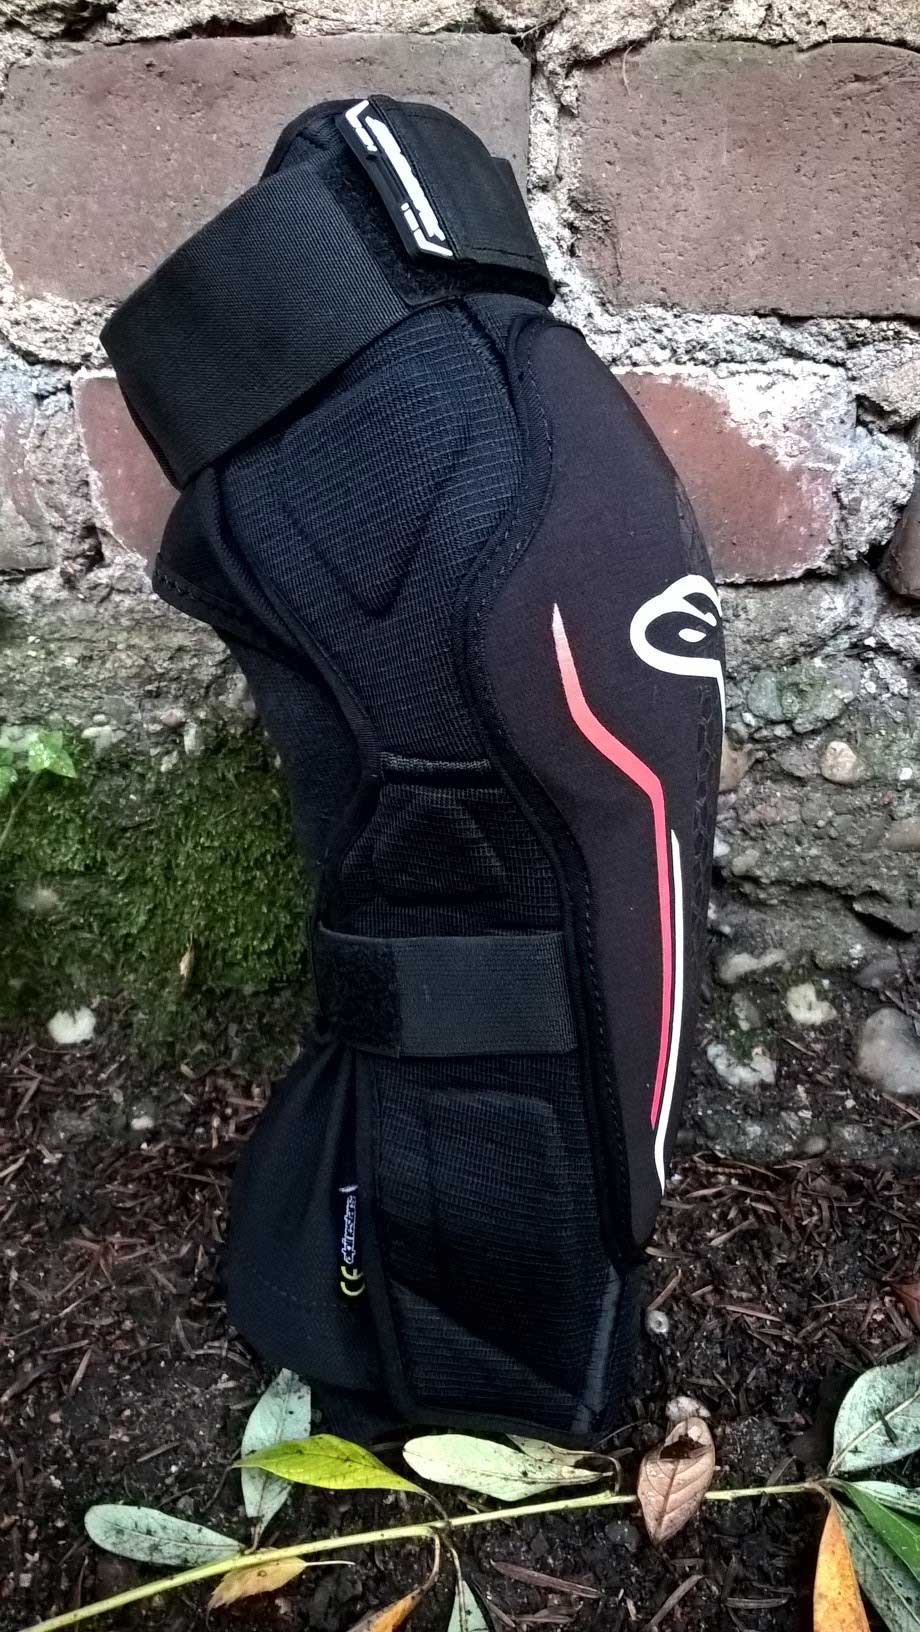 Alpinestar Alps 2 Knee Guard